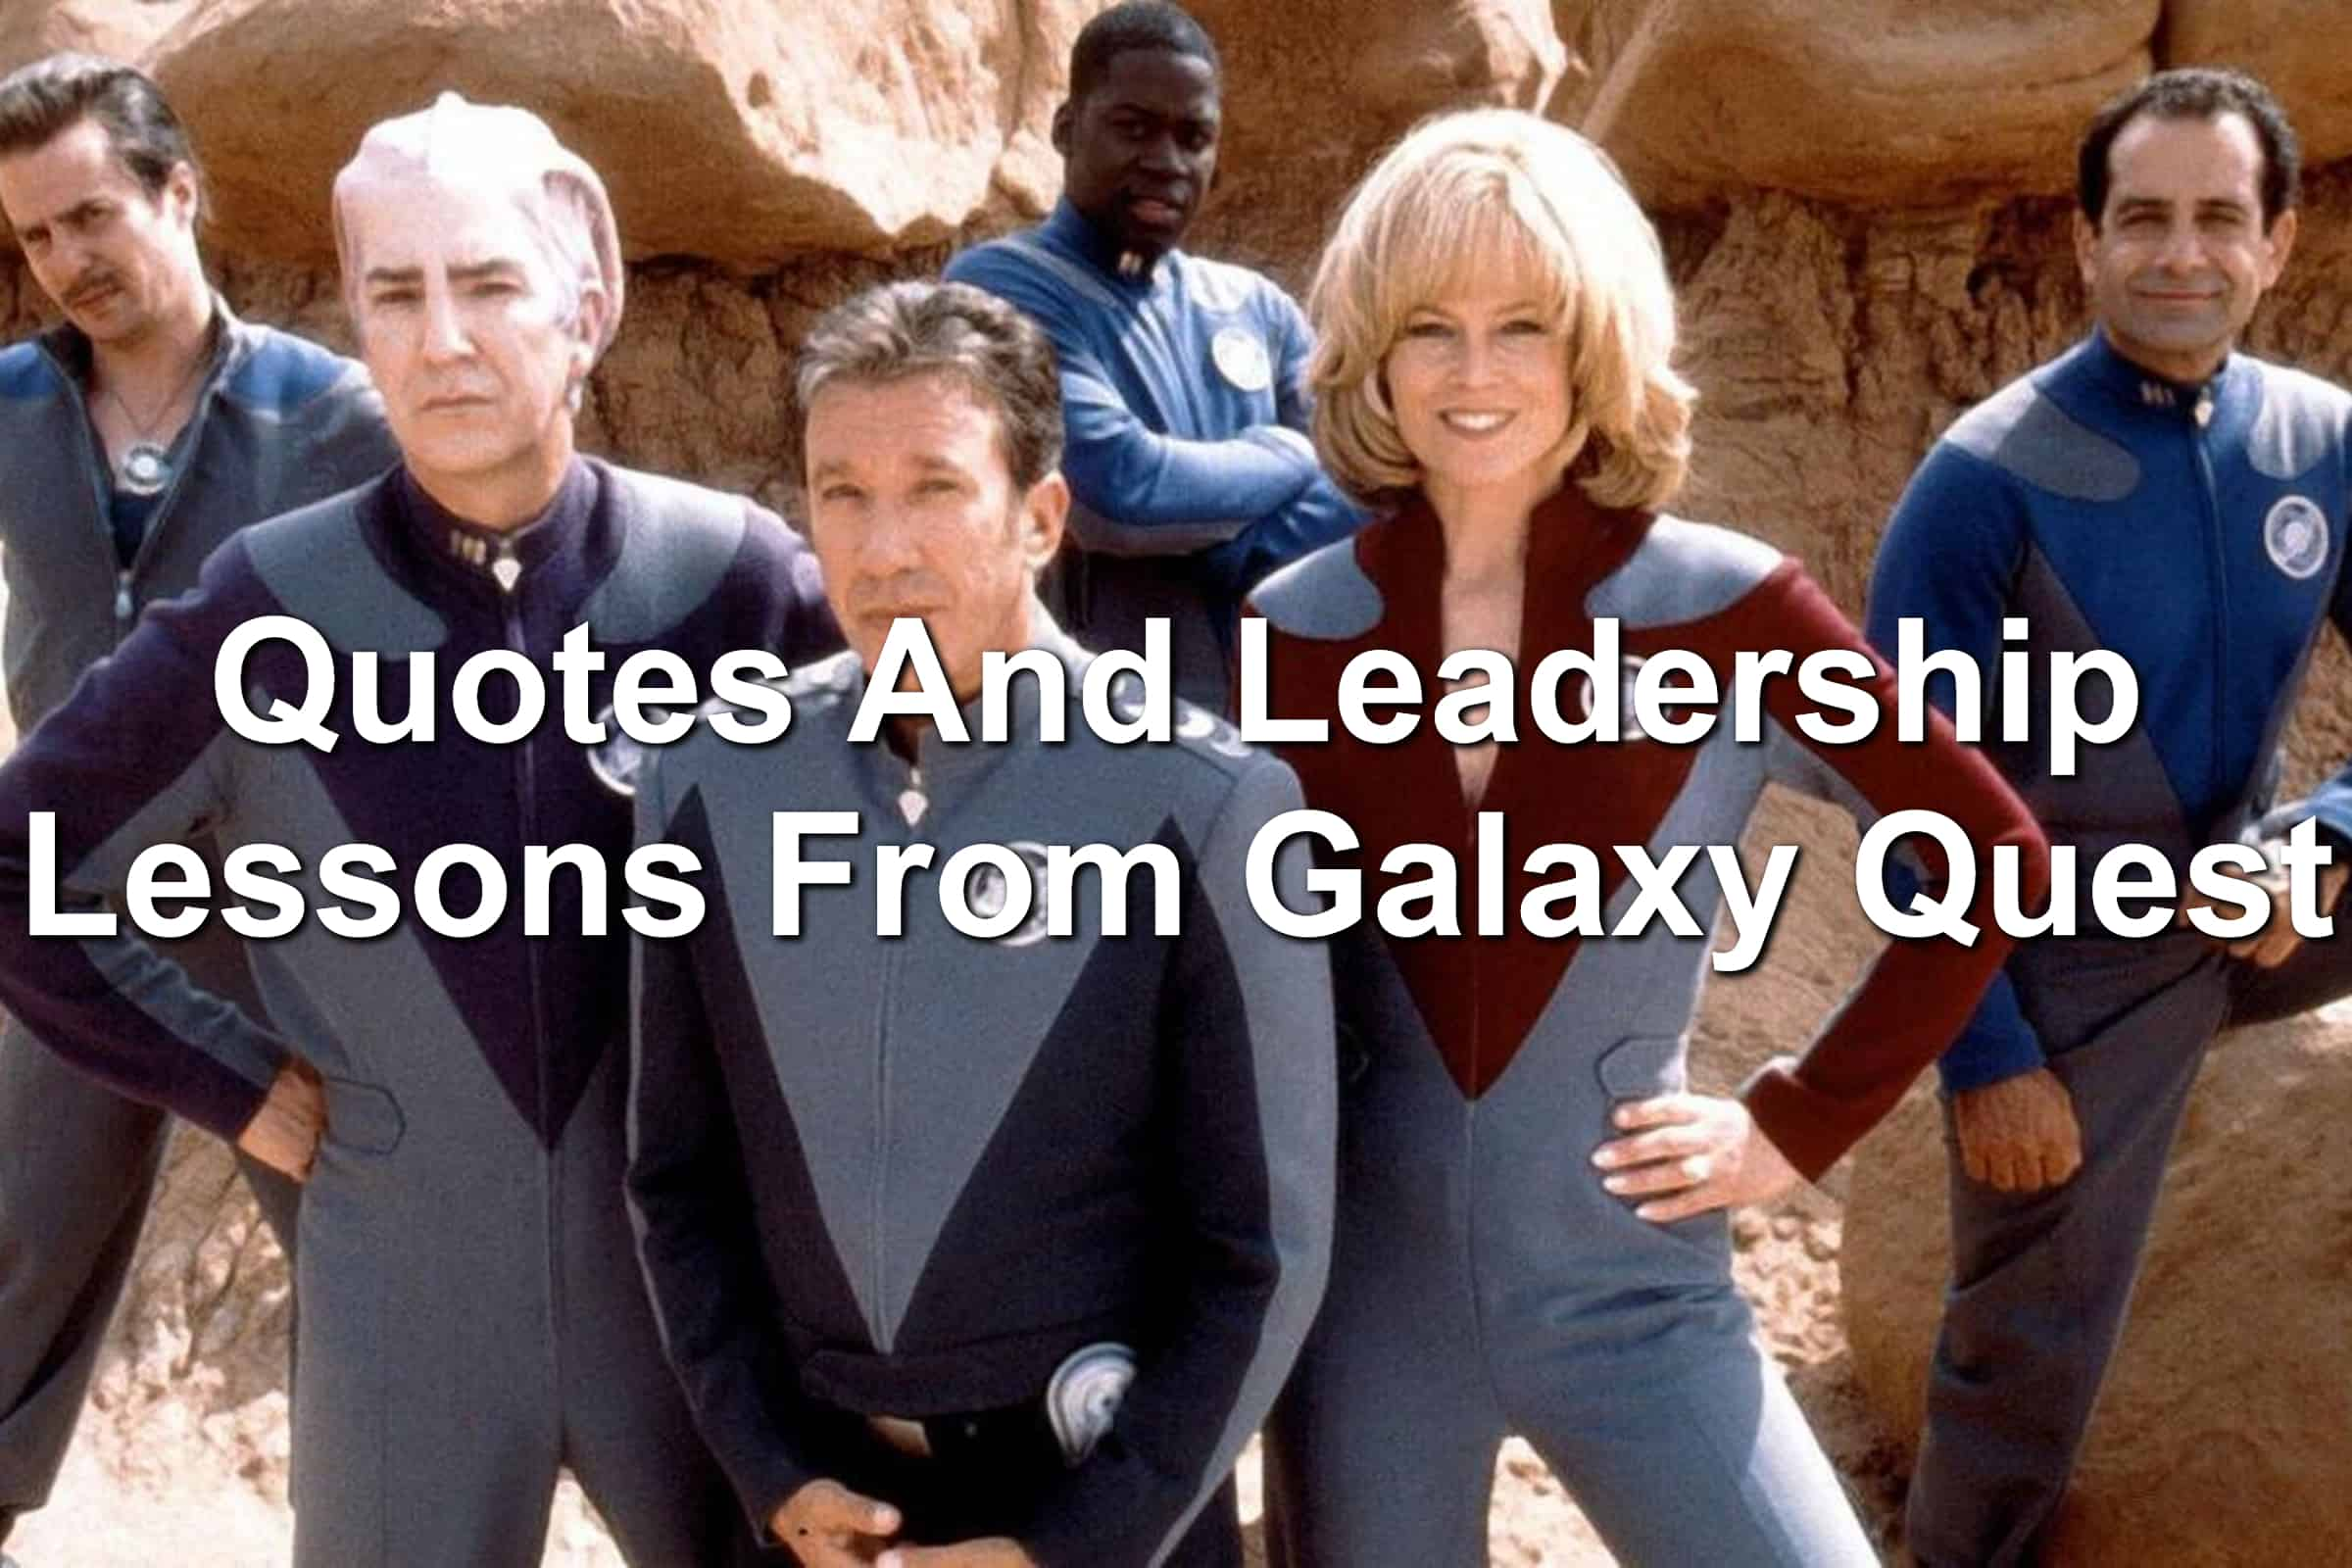 Cast of Galaxy Quest posing heroically.